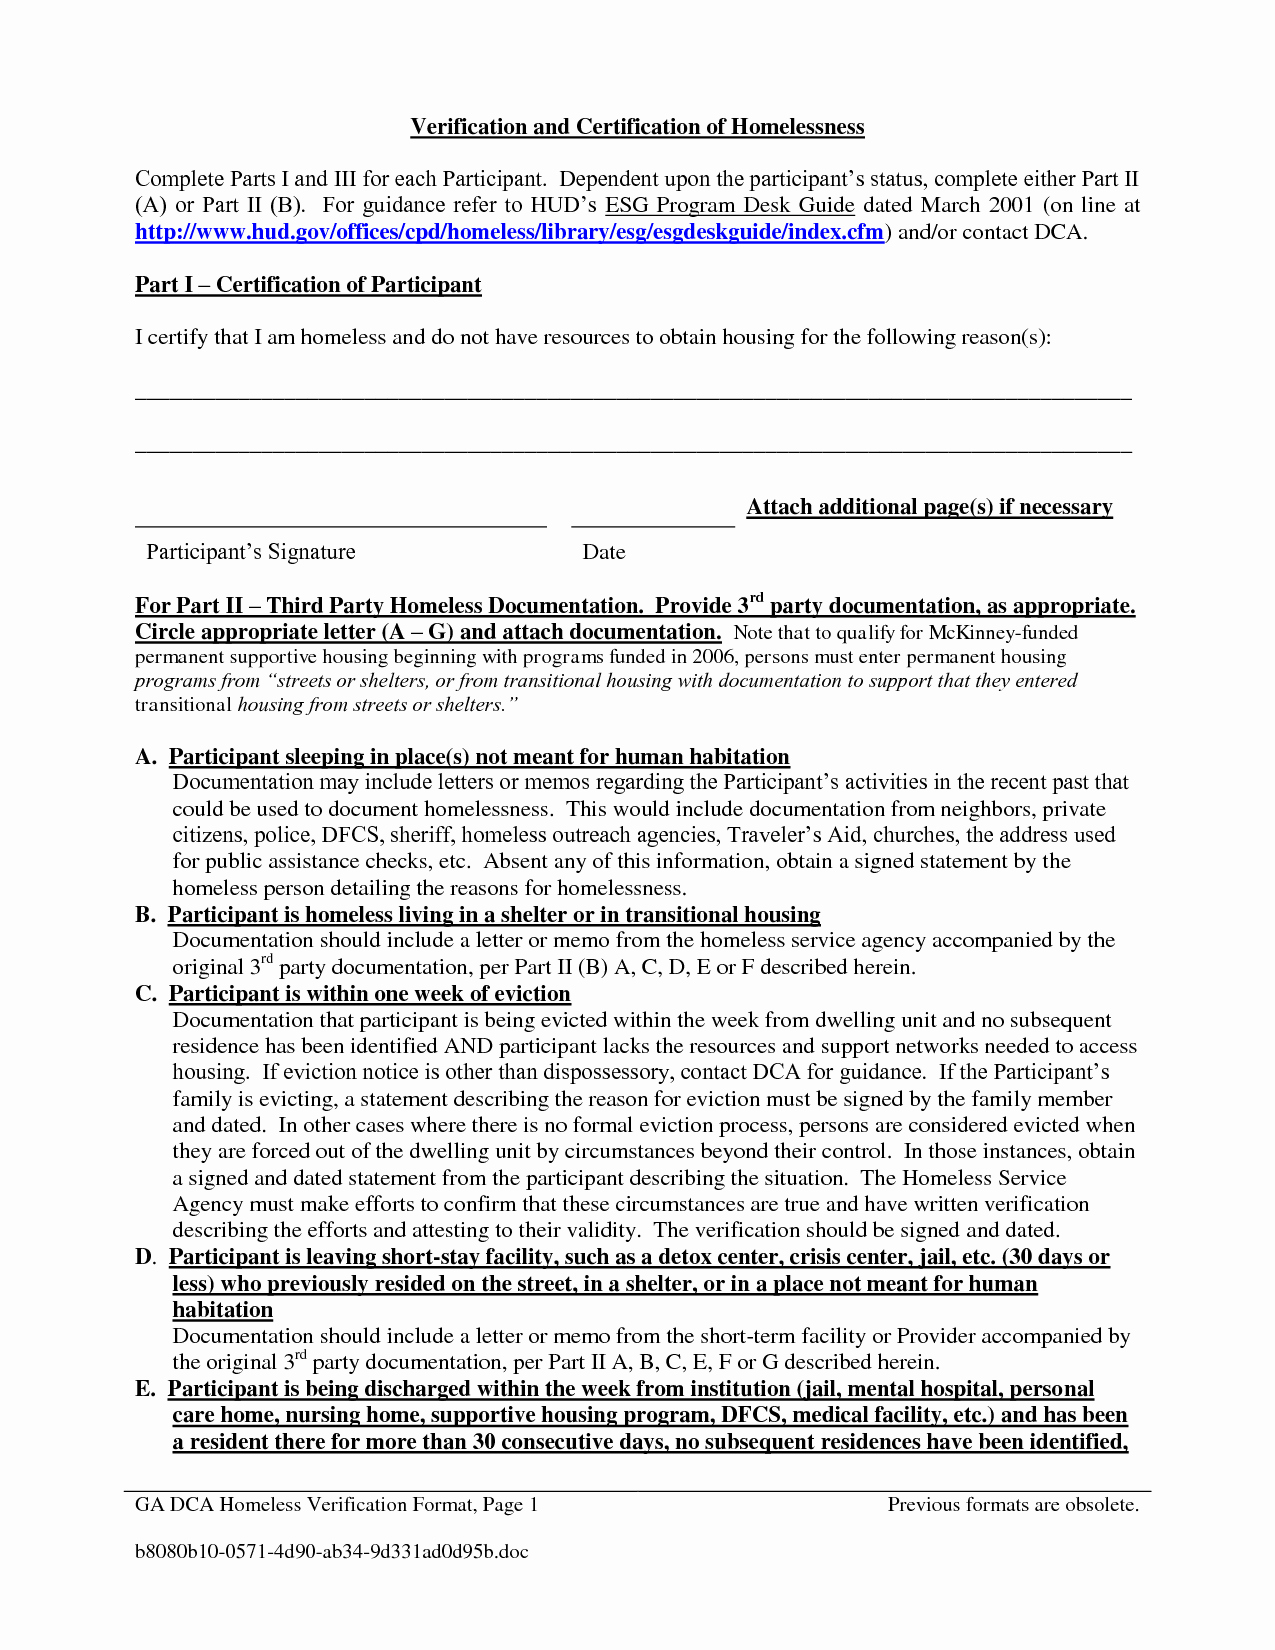 Georgia Eviction Notice Template Luxury Free Eviction Notice